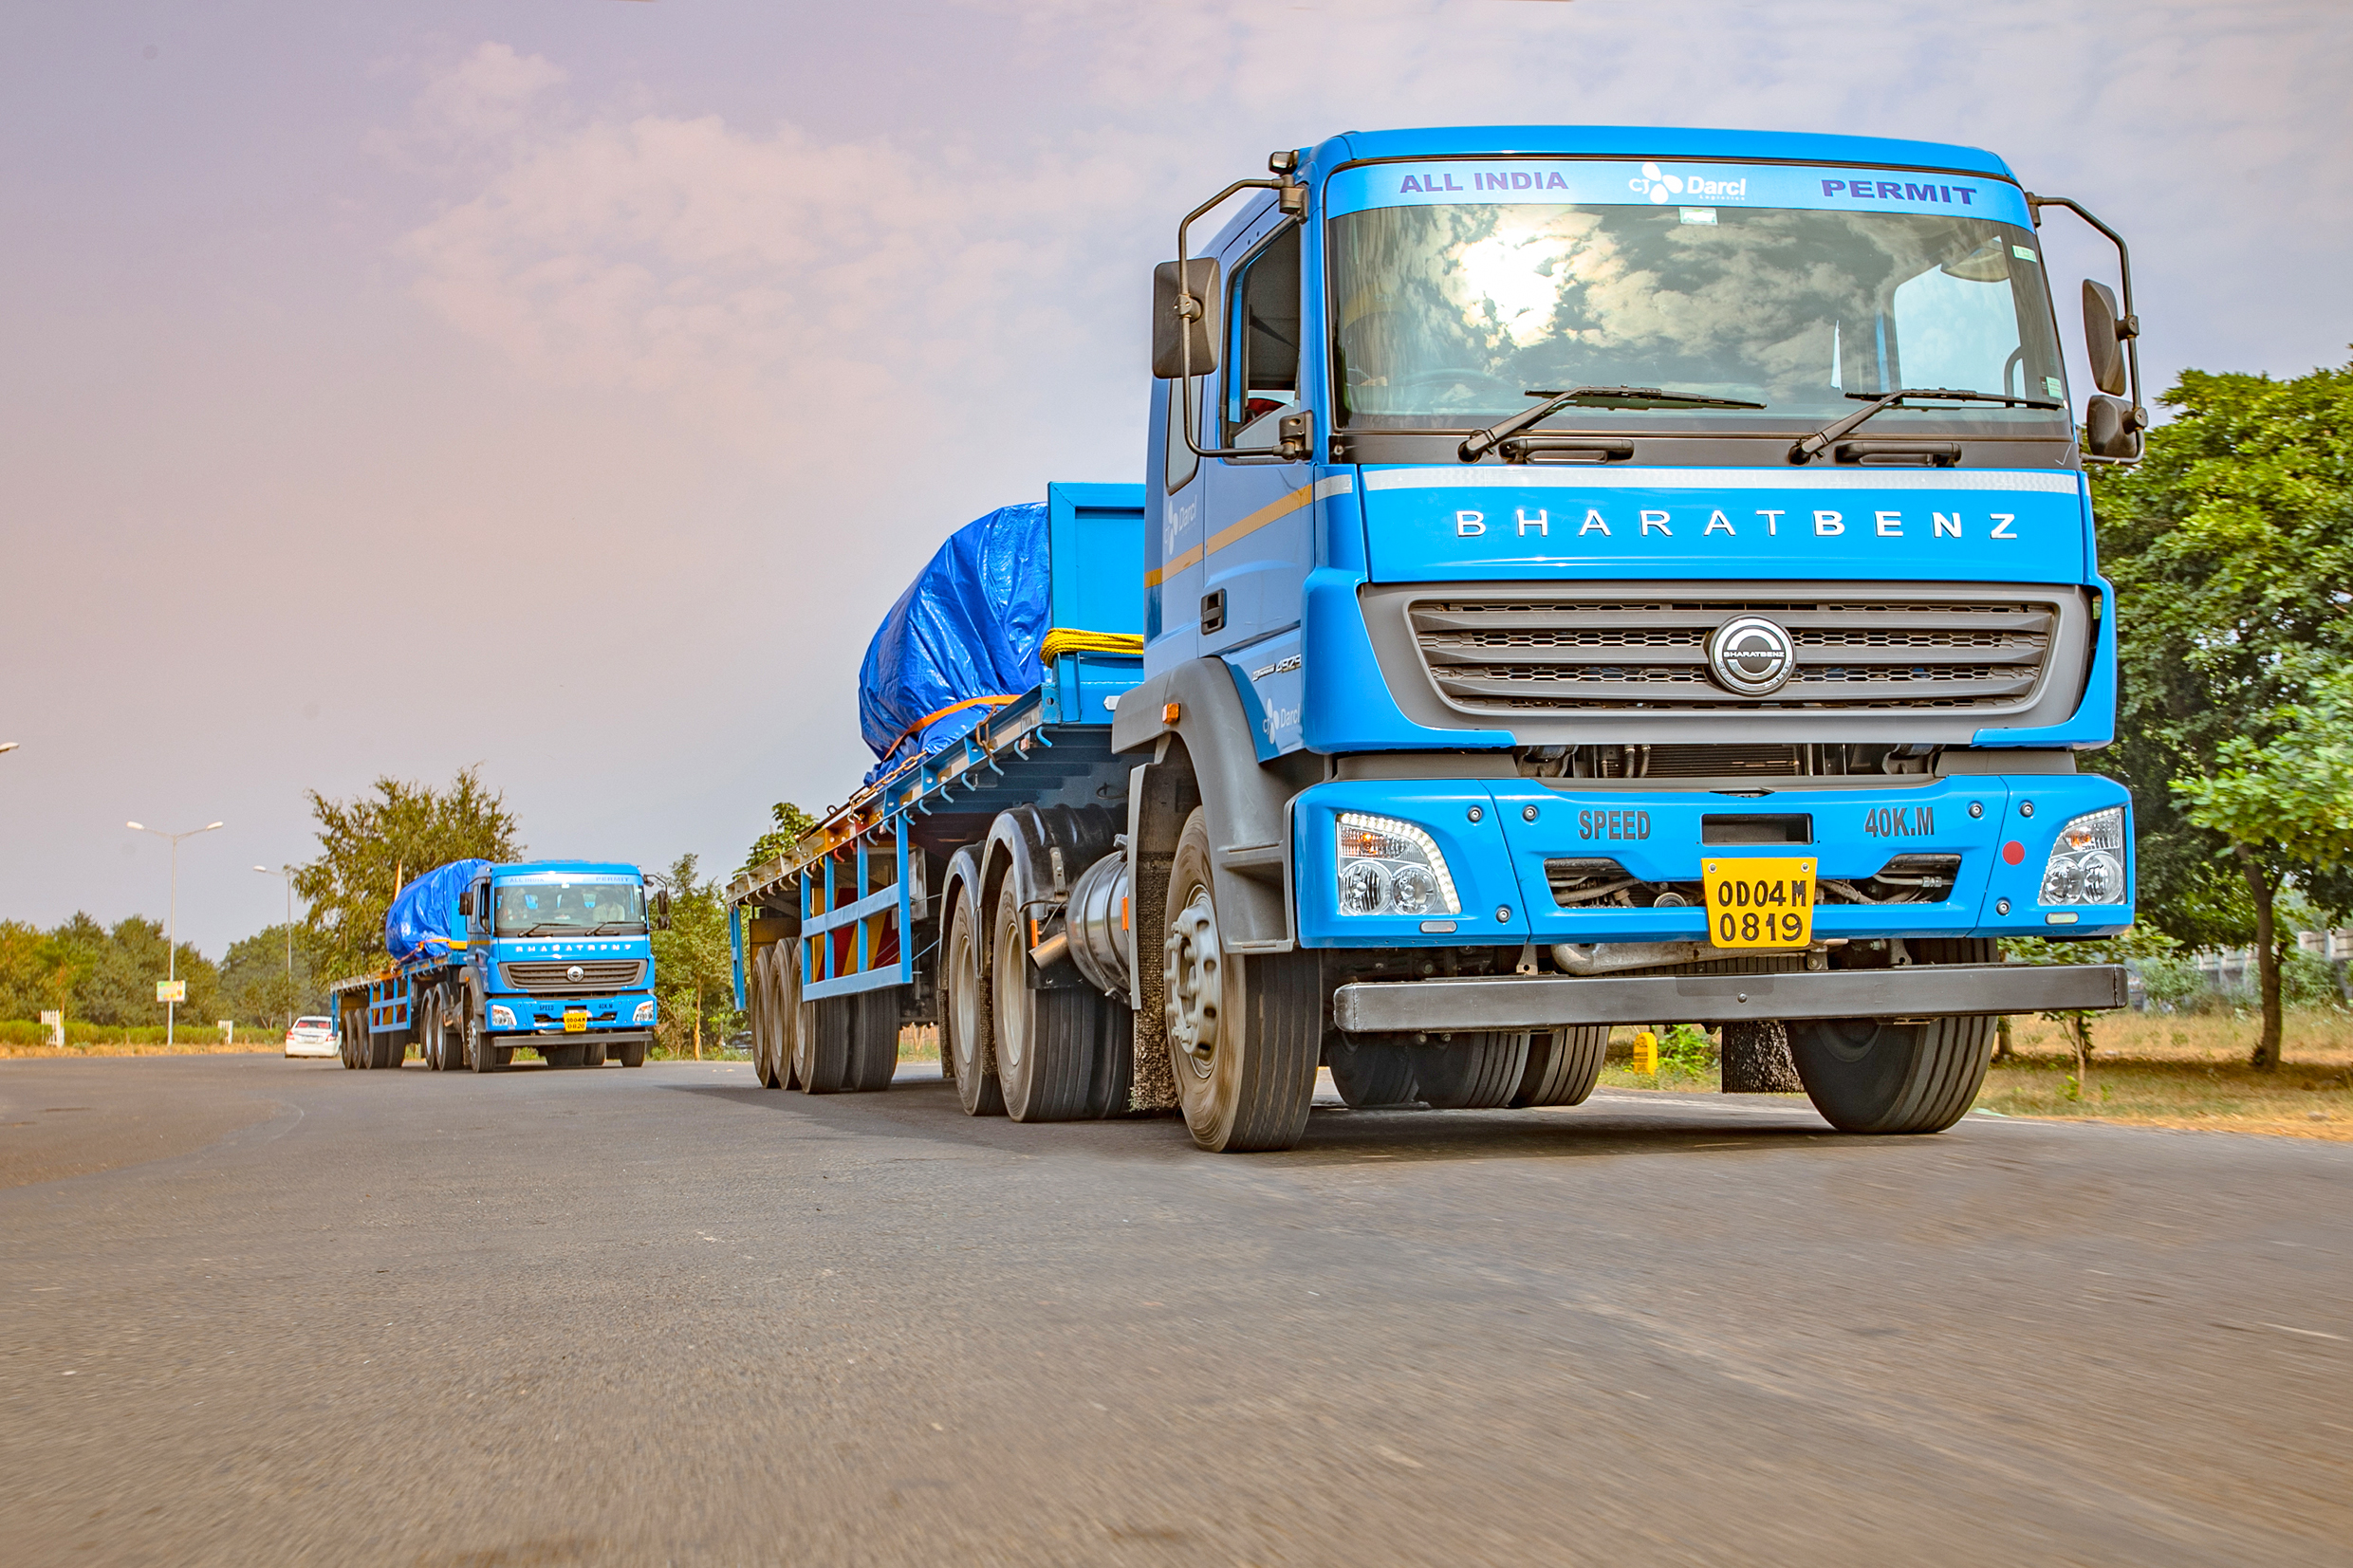 CJ Darcl Logistics bets big on BharatBenz